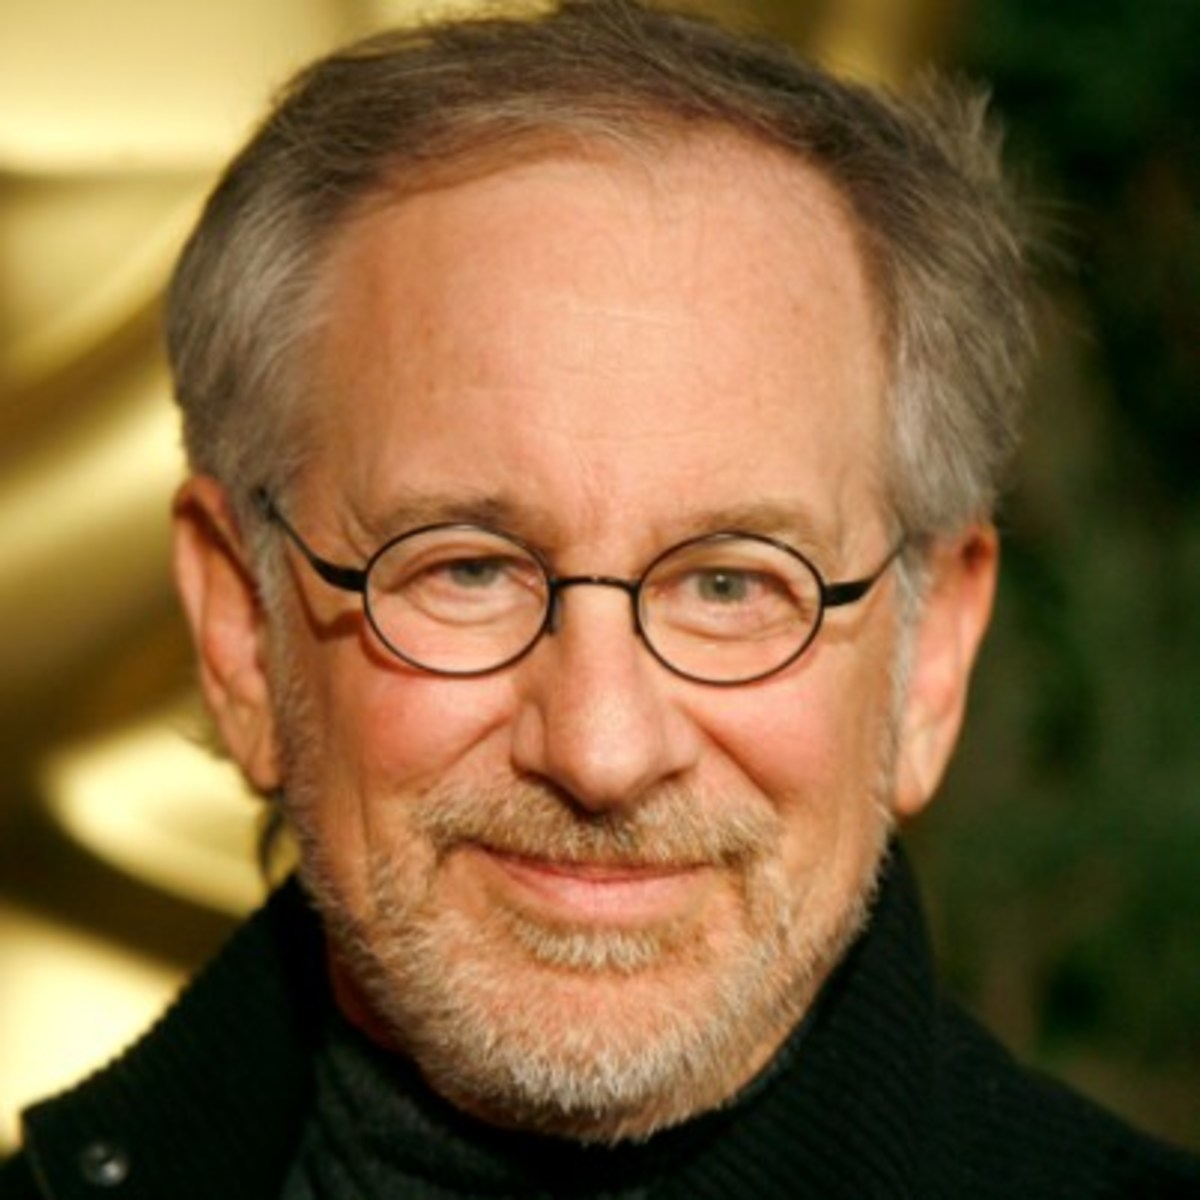 steven spielberg screenwriter director producer com